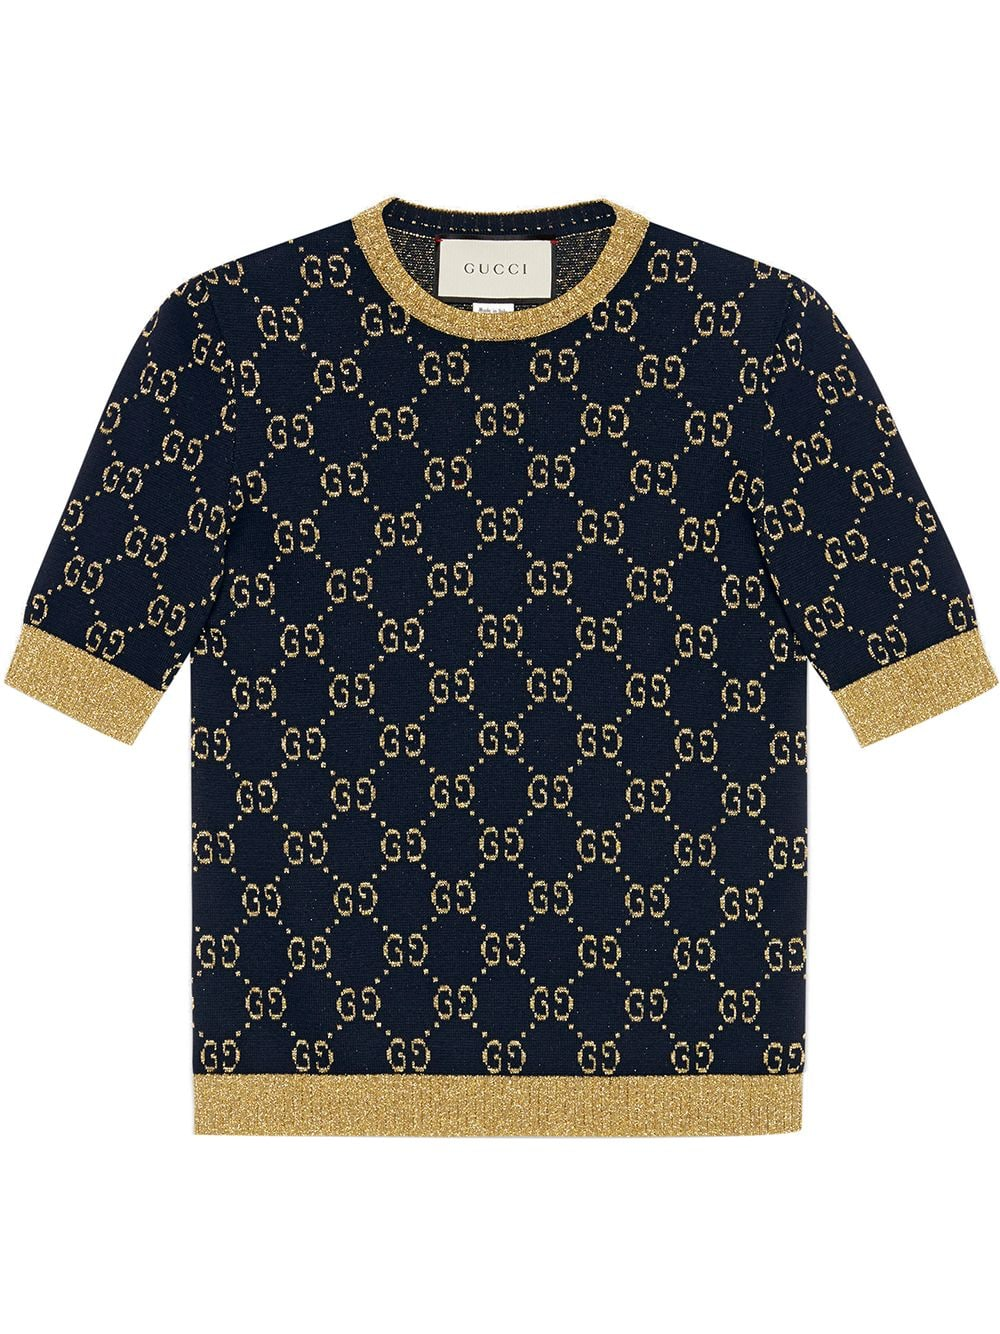 Gg Wool Crewneck Top